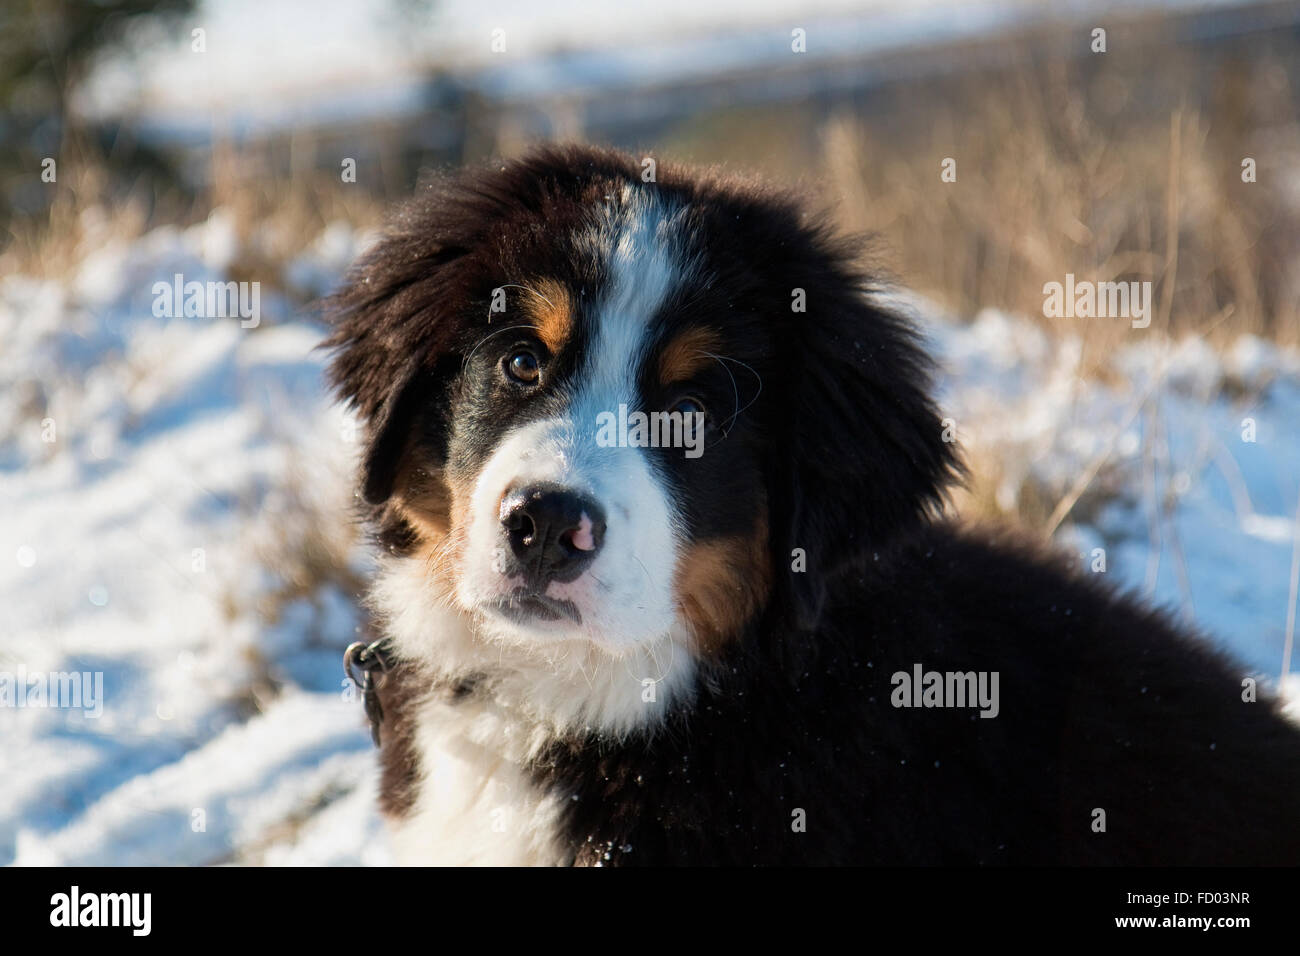 Closeup on berner sennen puppy in the snow - Stock Image